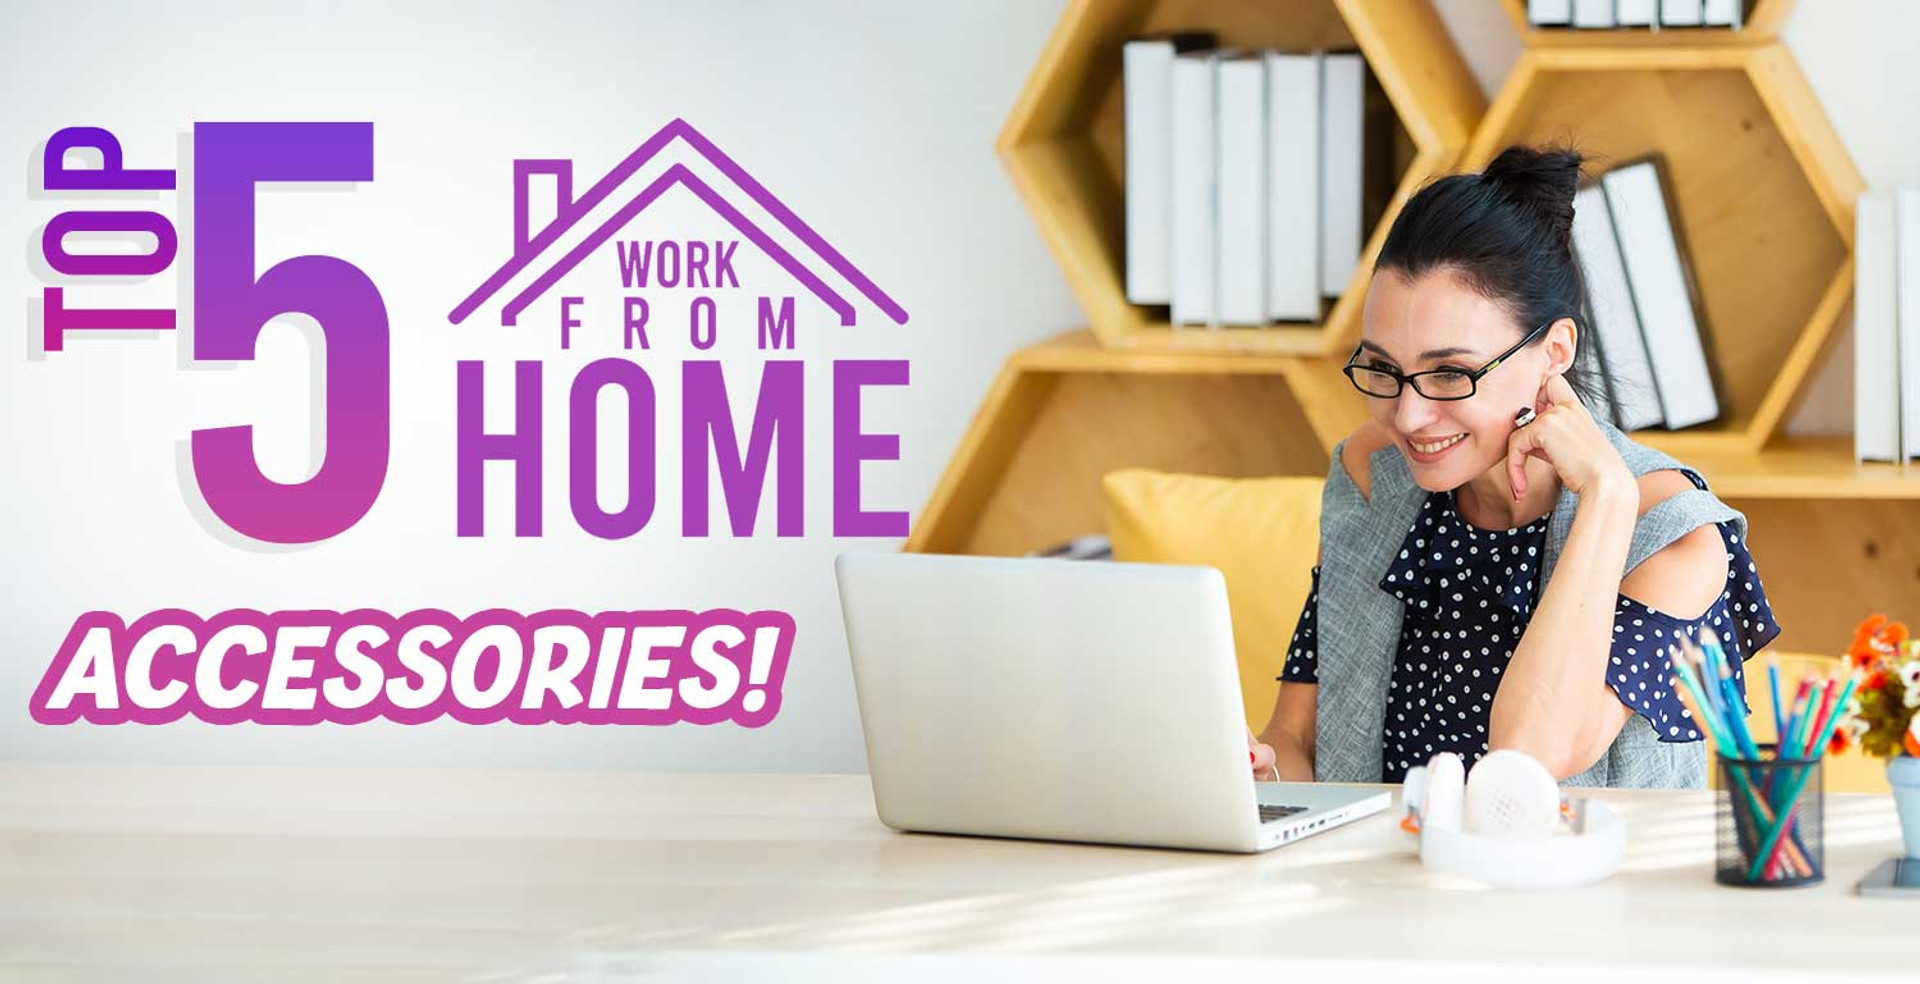 Top 5 Work from Home Accessories